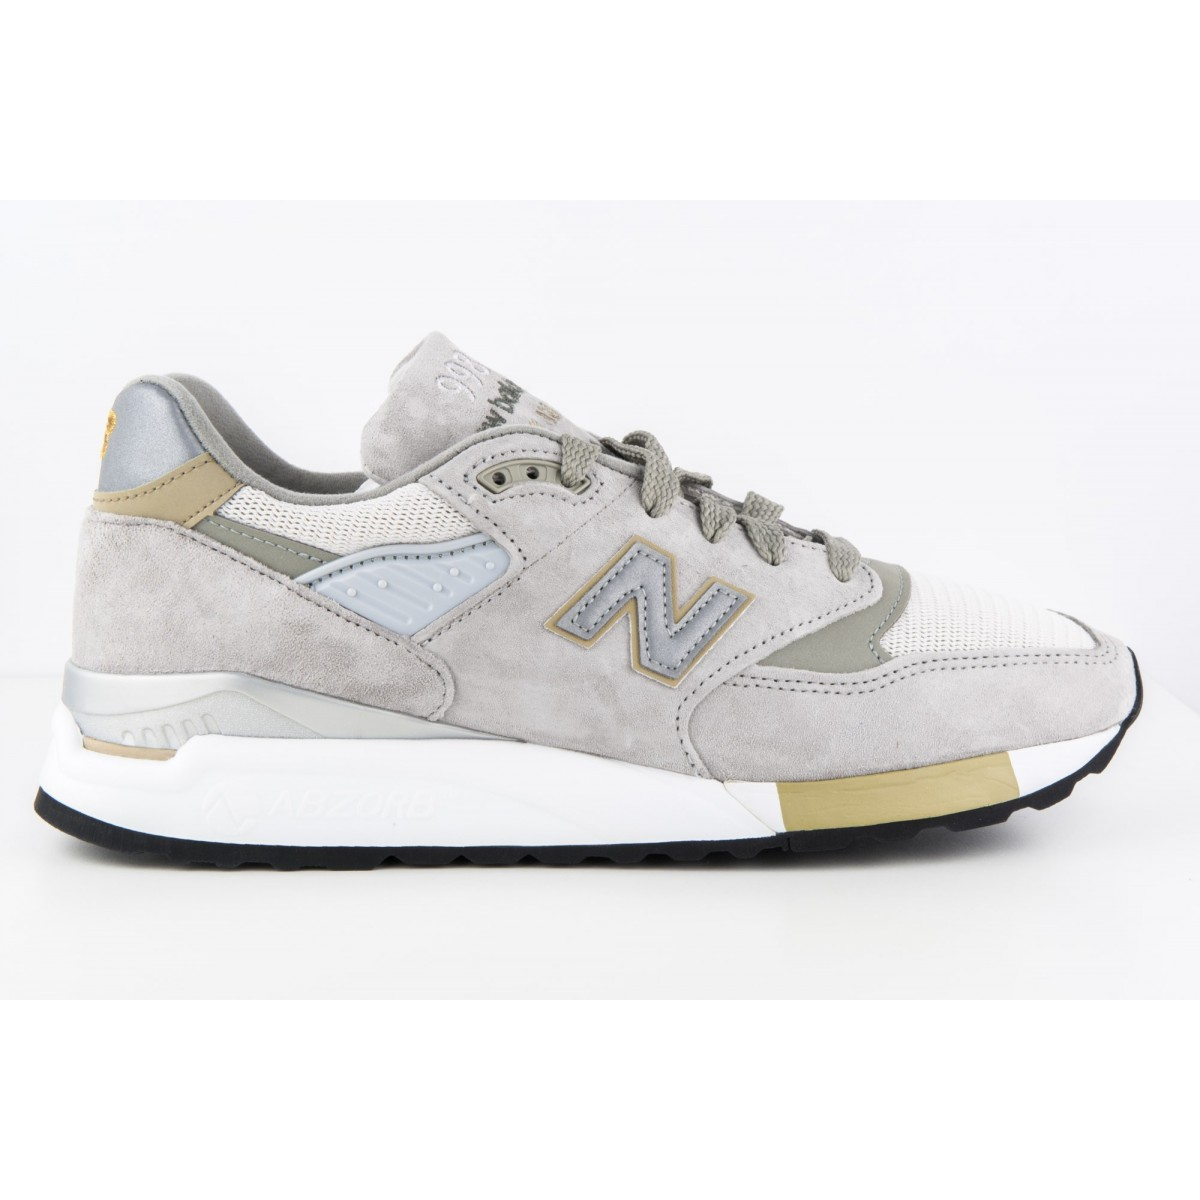 Schuhen New Balance - M998 Cel Made In Usa Limited Edition